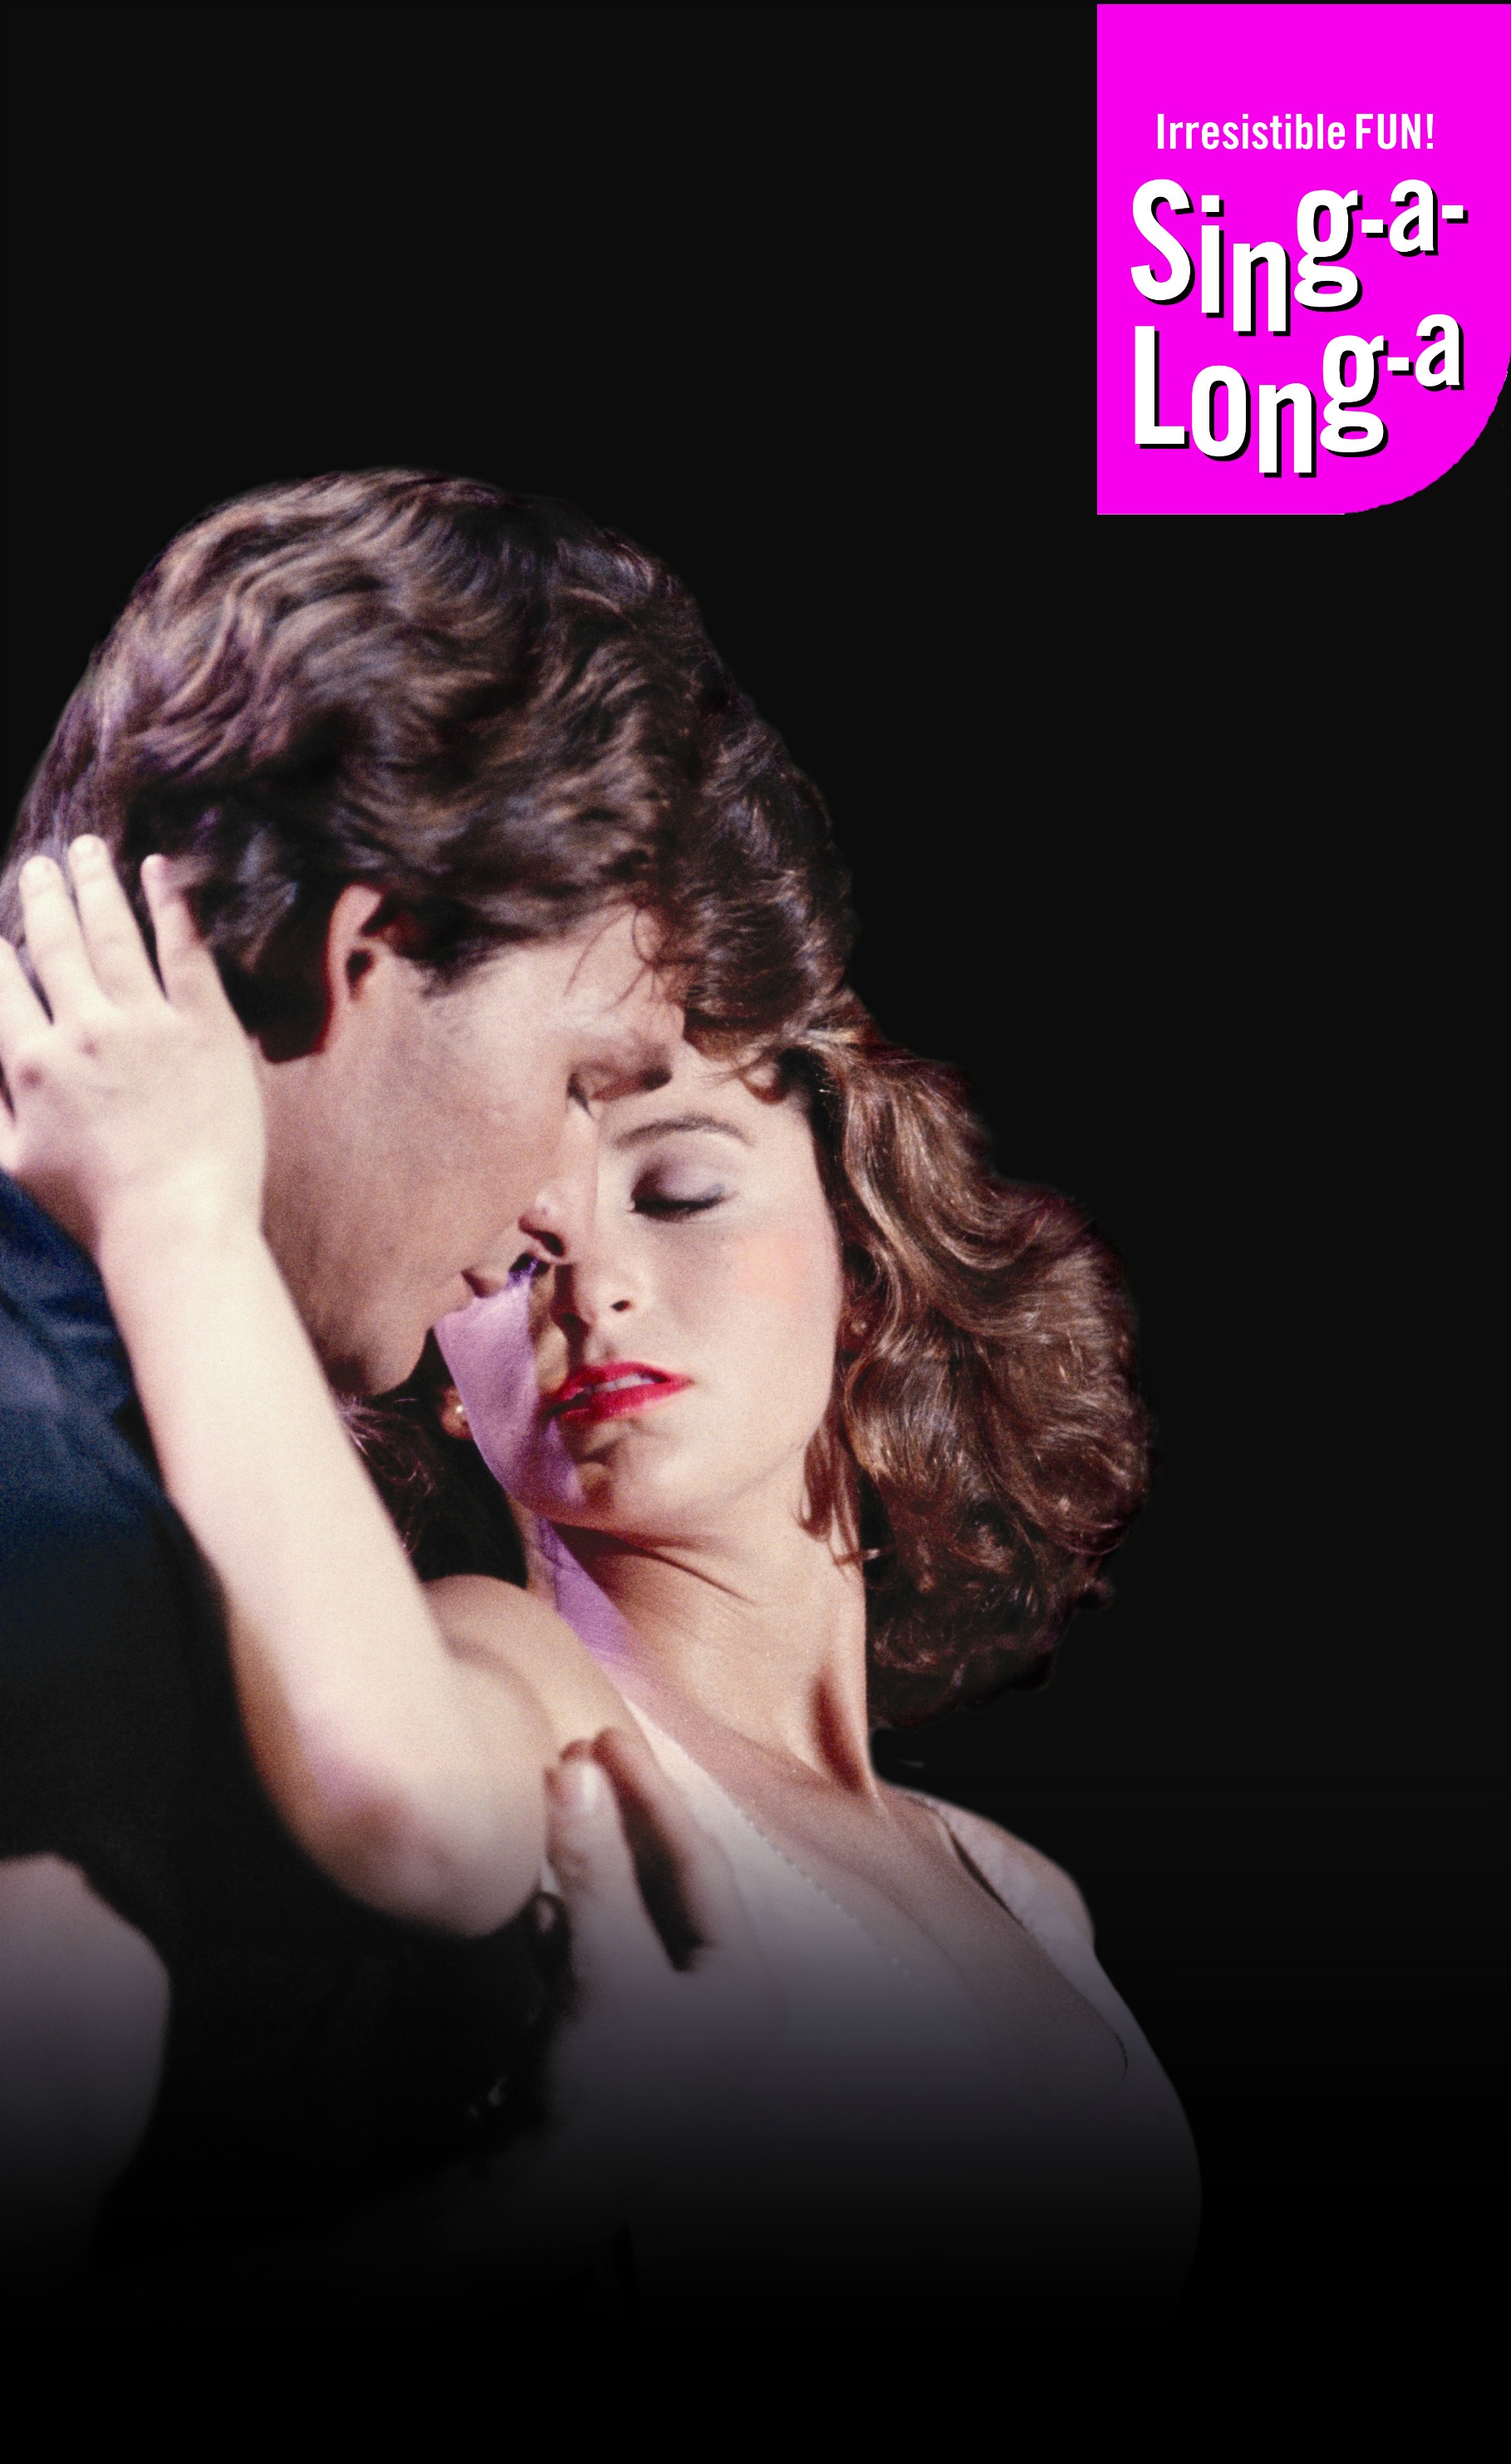 Singalonga Productions Ltd presents Sing-a-Long-a Dirty Dancing